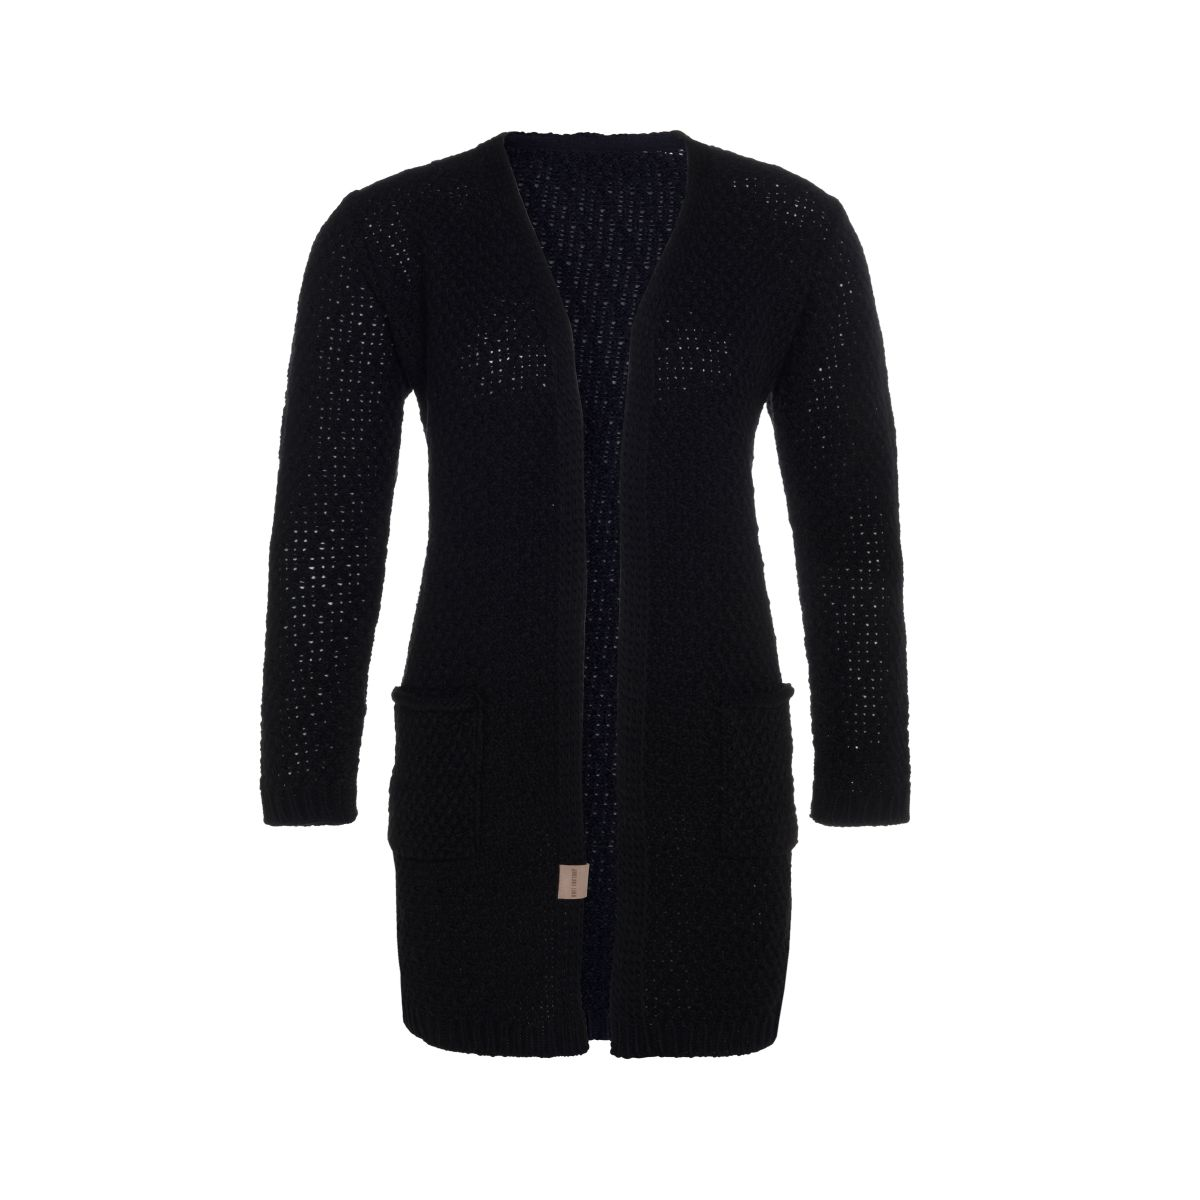 luna knitted cardigan black 3638 with side pockets